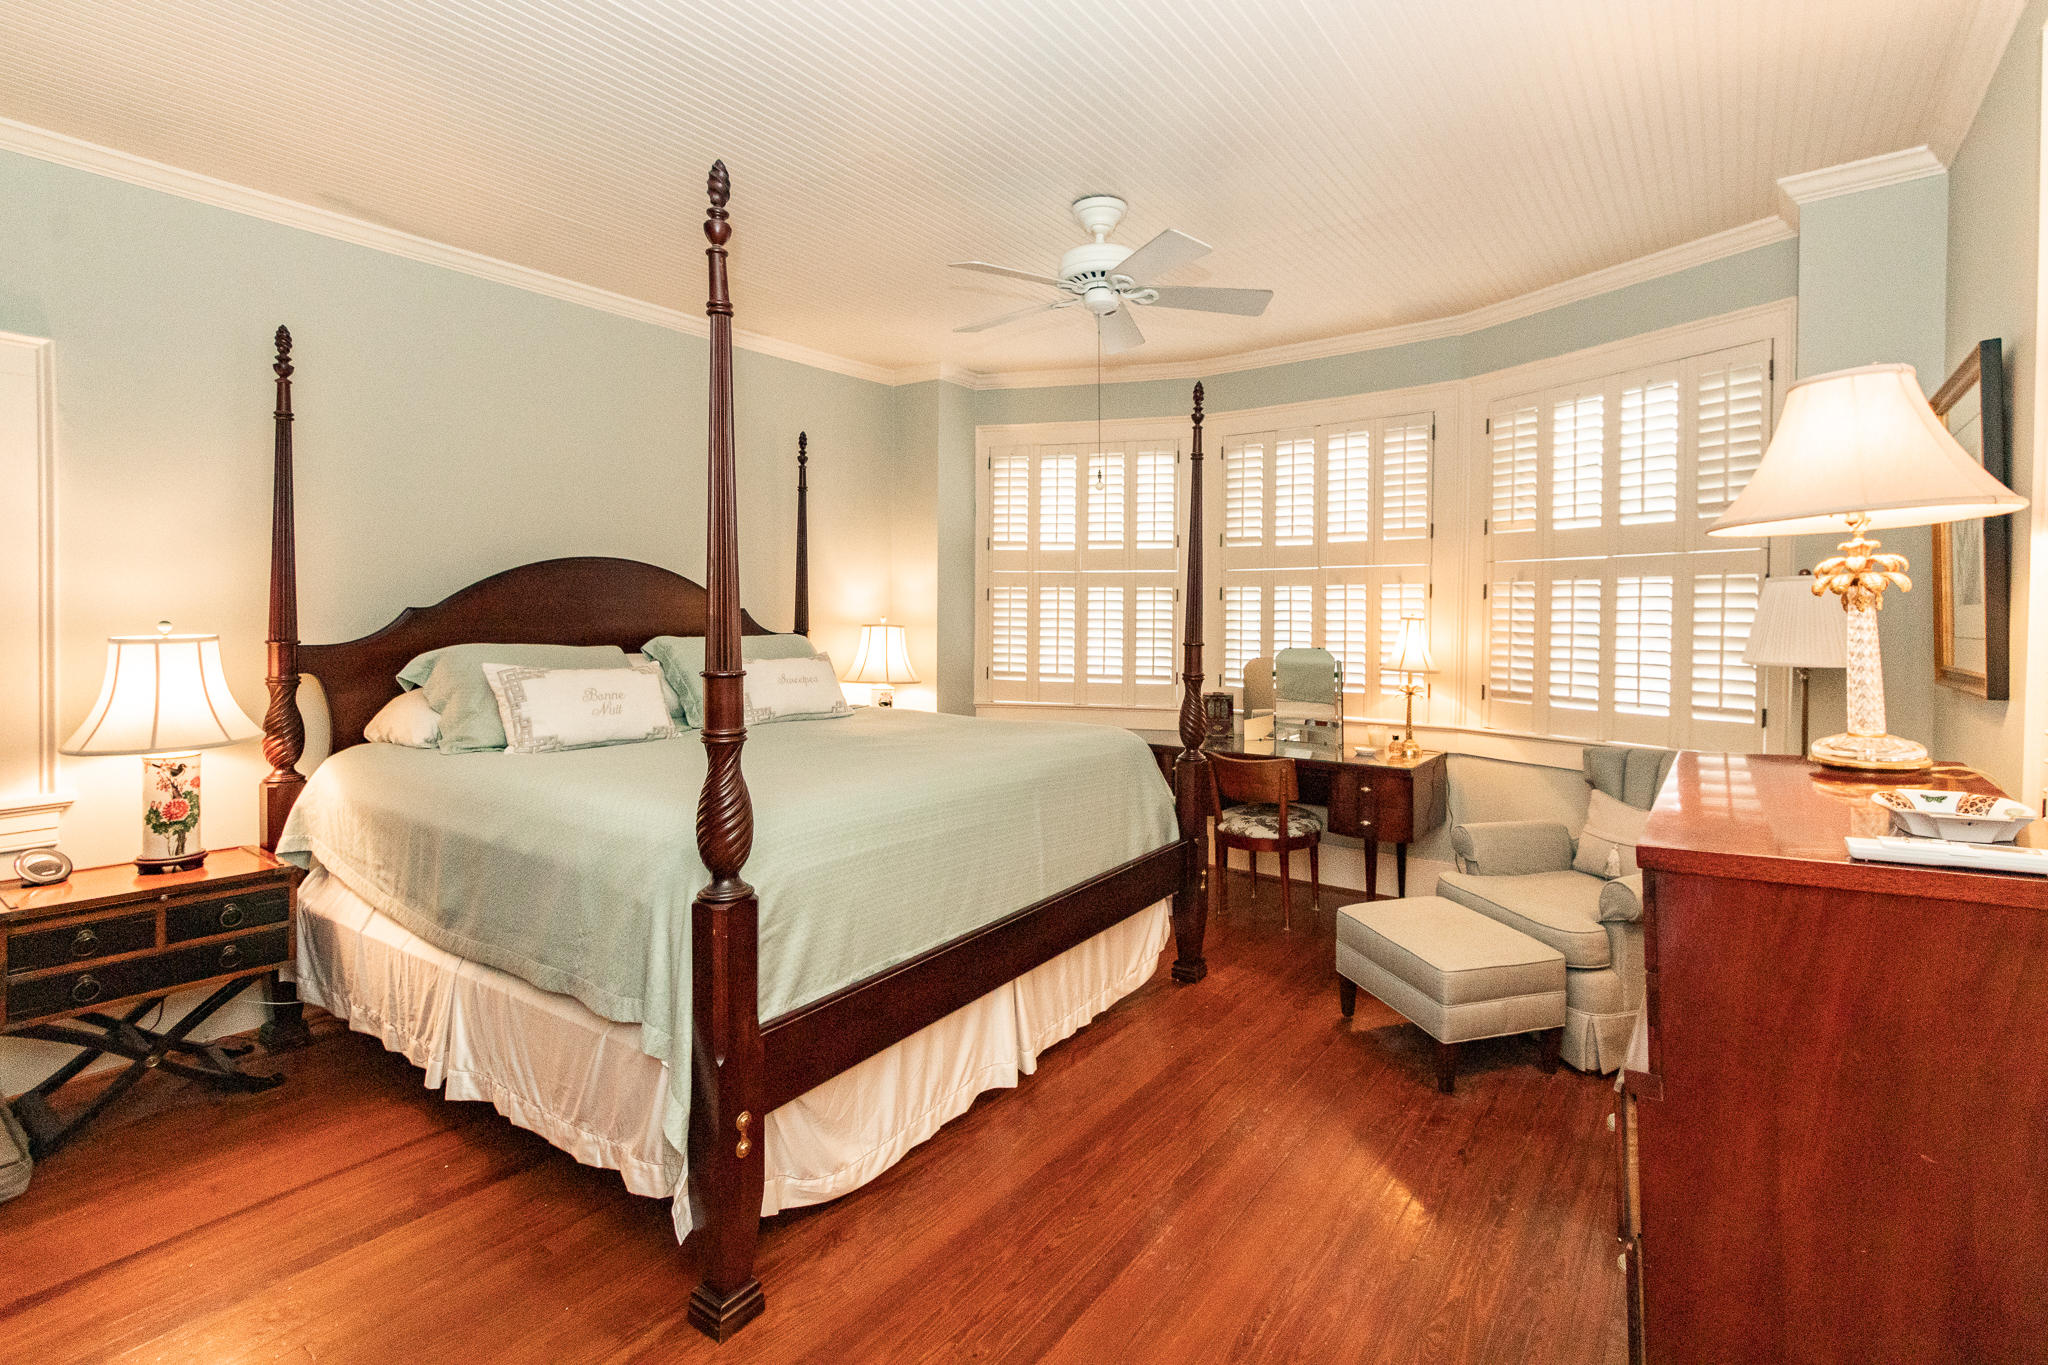 South of Broad Homes For Sale - 164 Tradd, Charleston, SC - 5